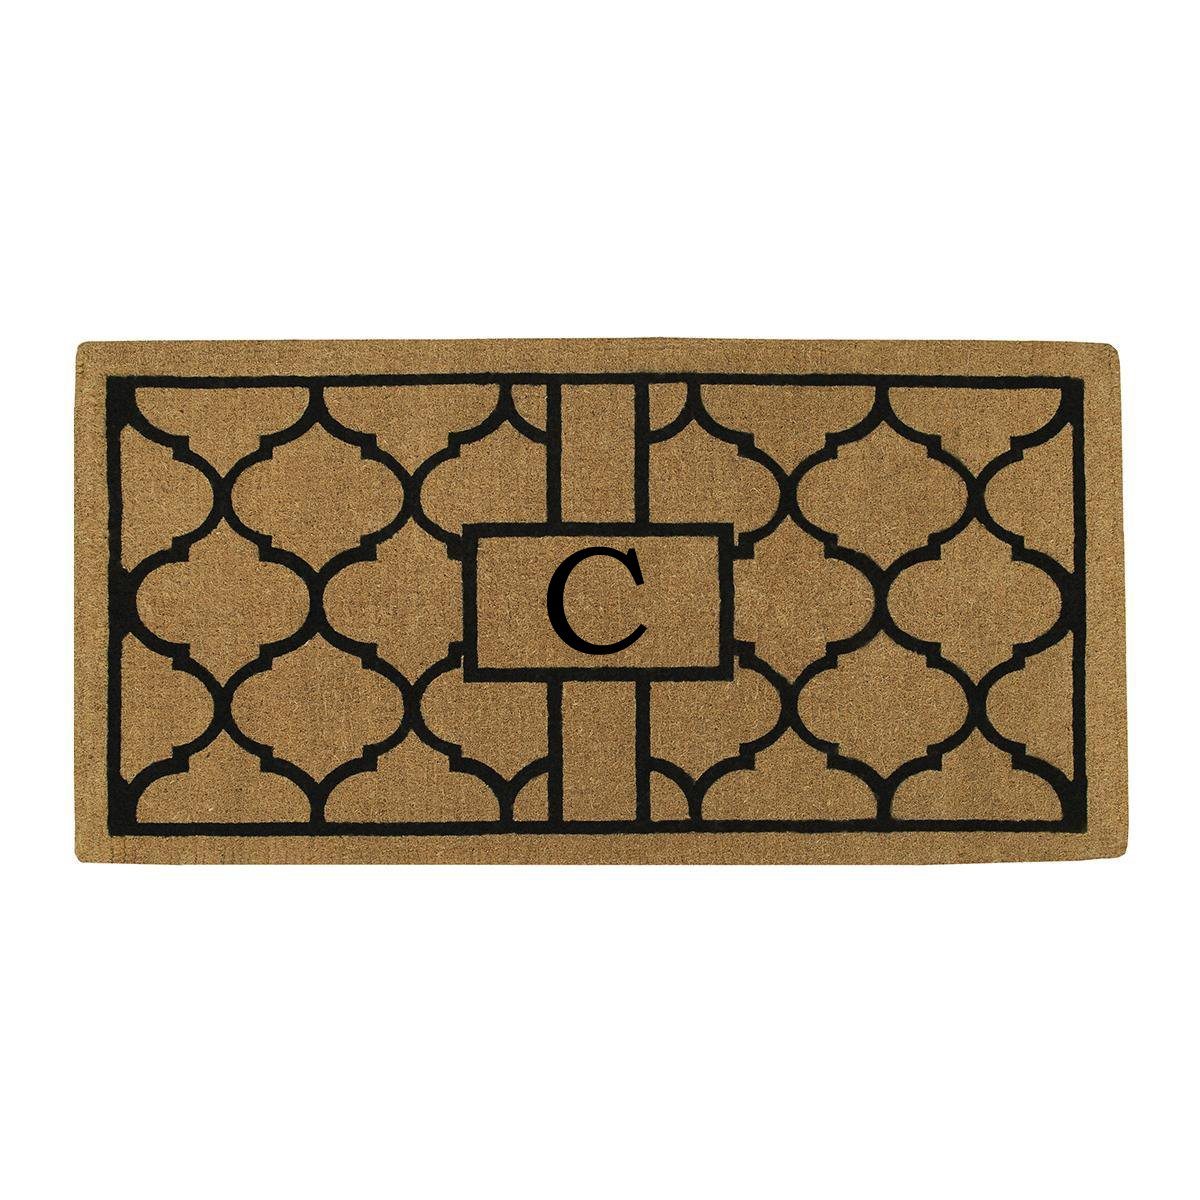 Home & More 180083672C Pantera Extra-thick Doormat, 36'' x 72'' x 1.50'', Monogrammed Letter C, Natural/Black